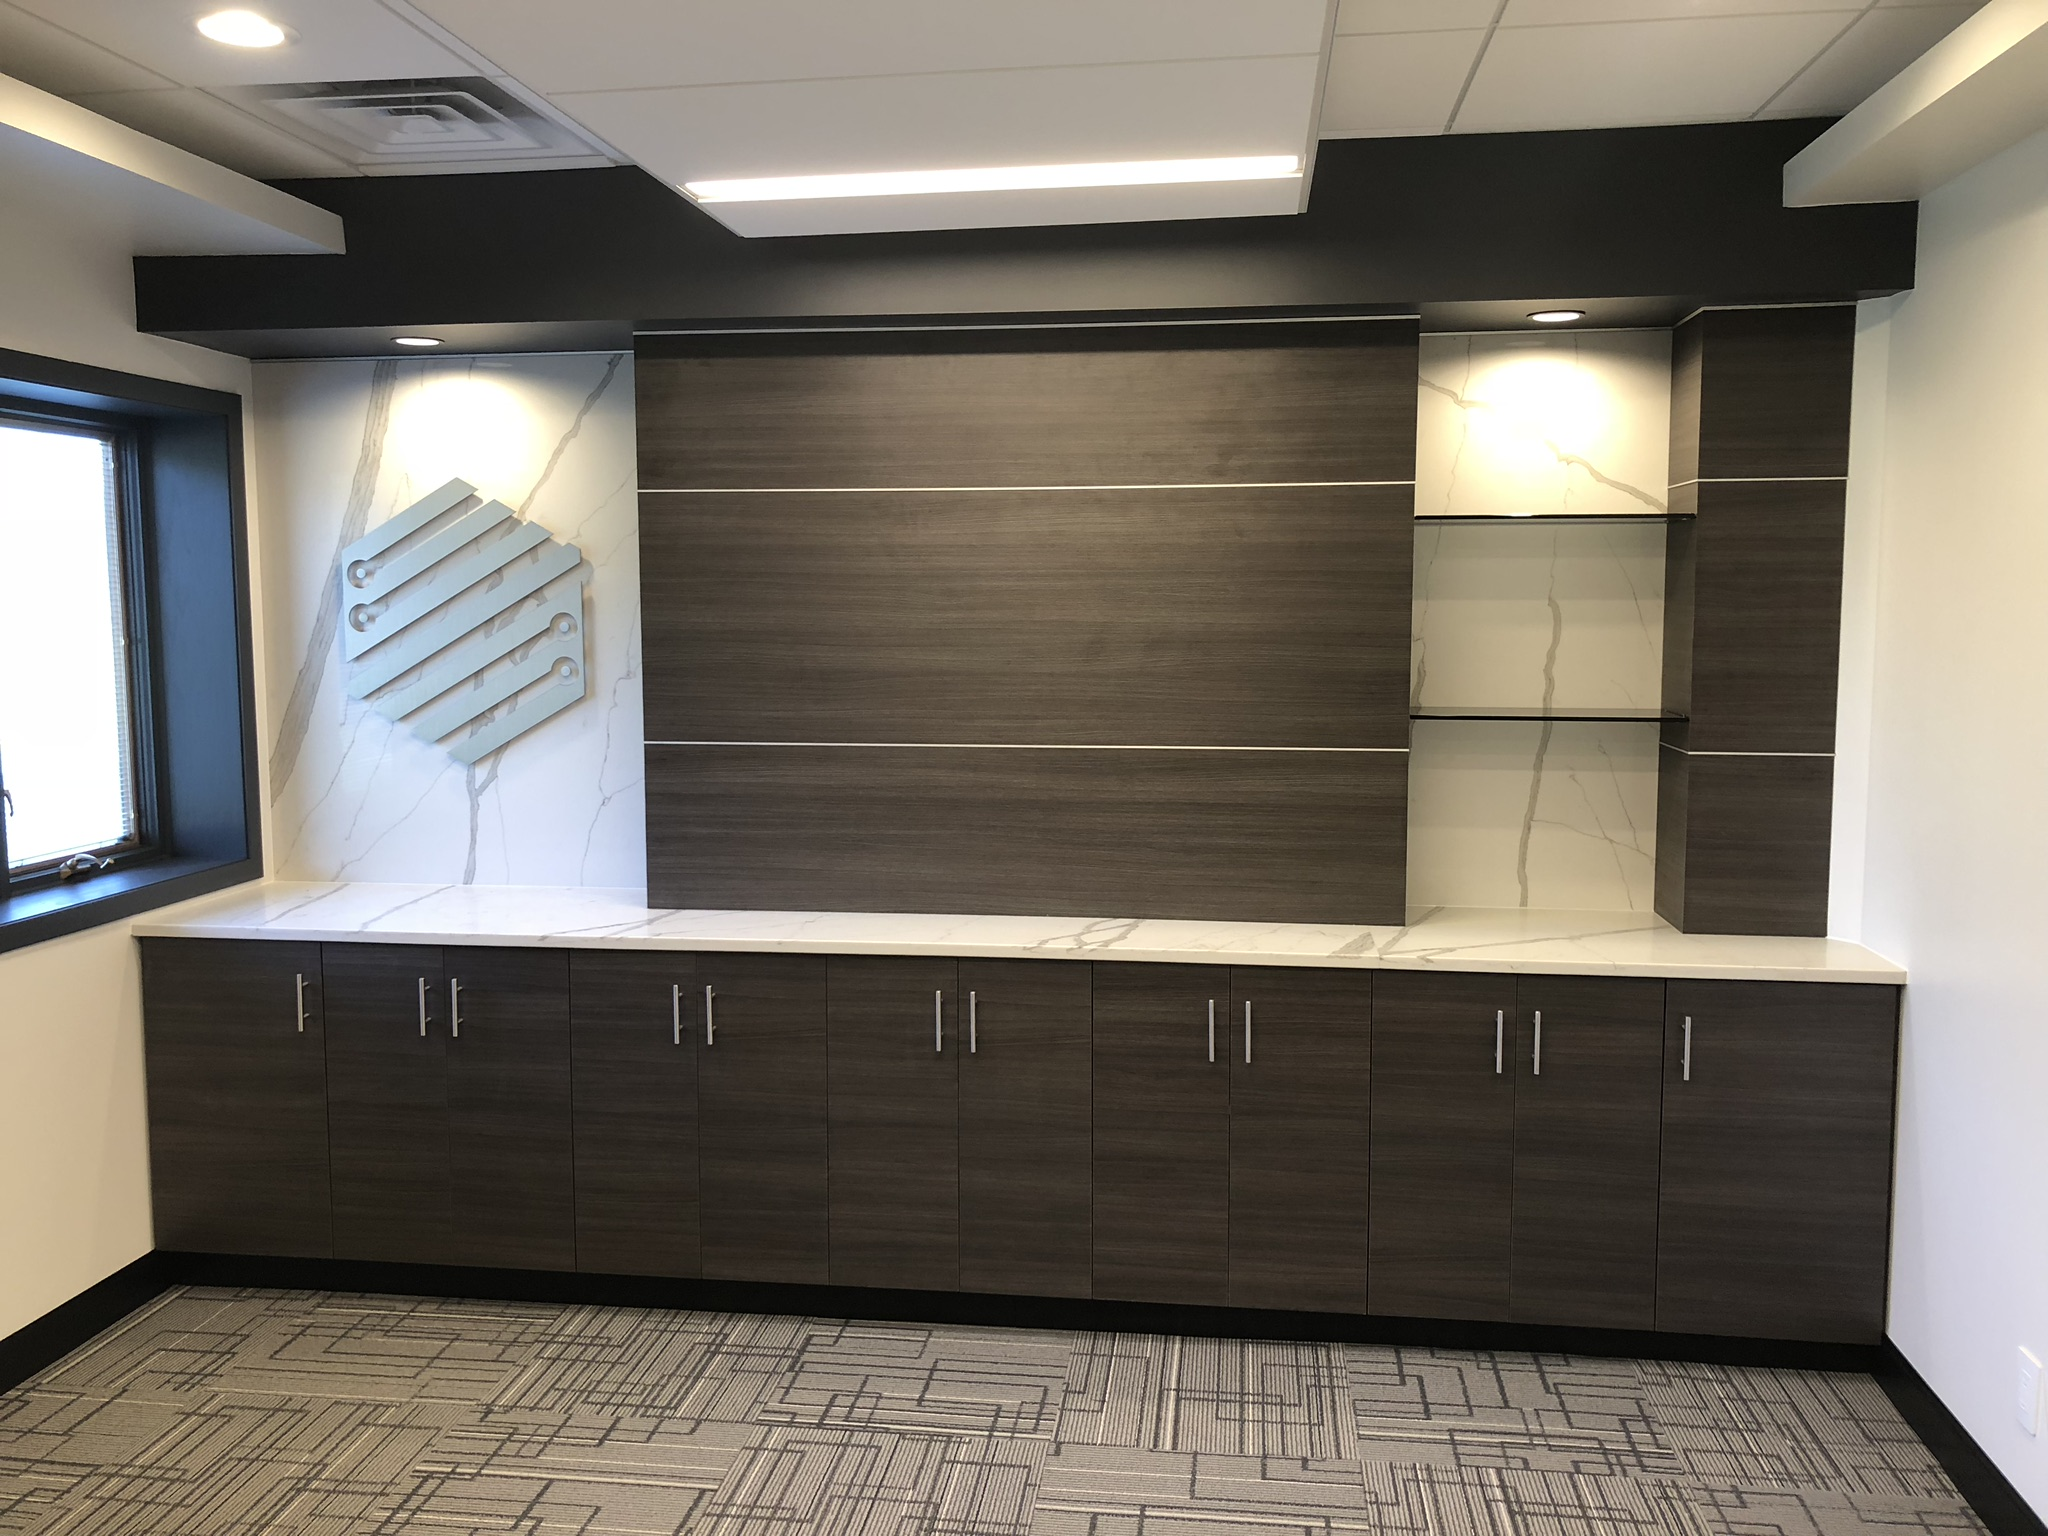 Dras Cases designed this beautiful cabinetry at El Microcircuit in Mankato, MN